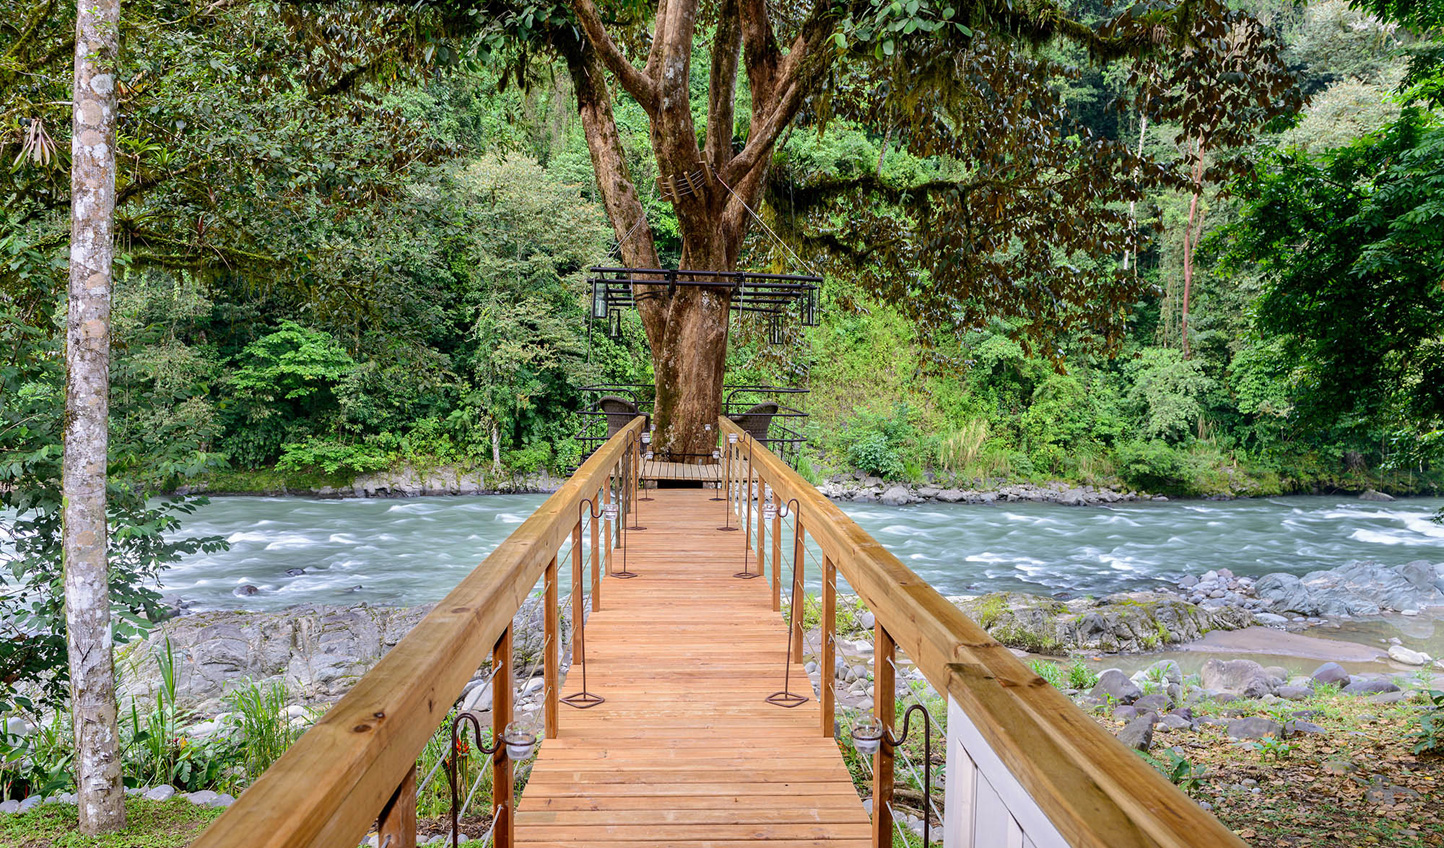 Walk through the trees and over the river to reach your suite